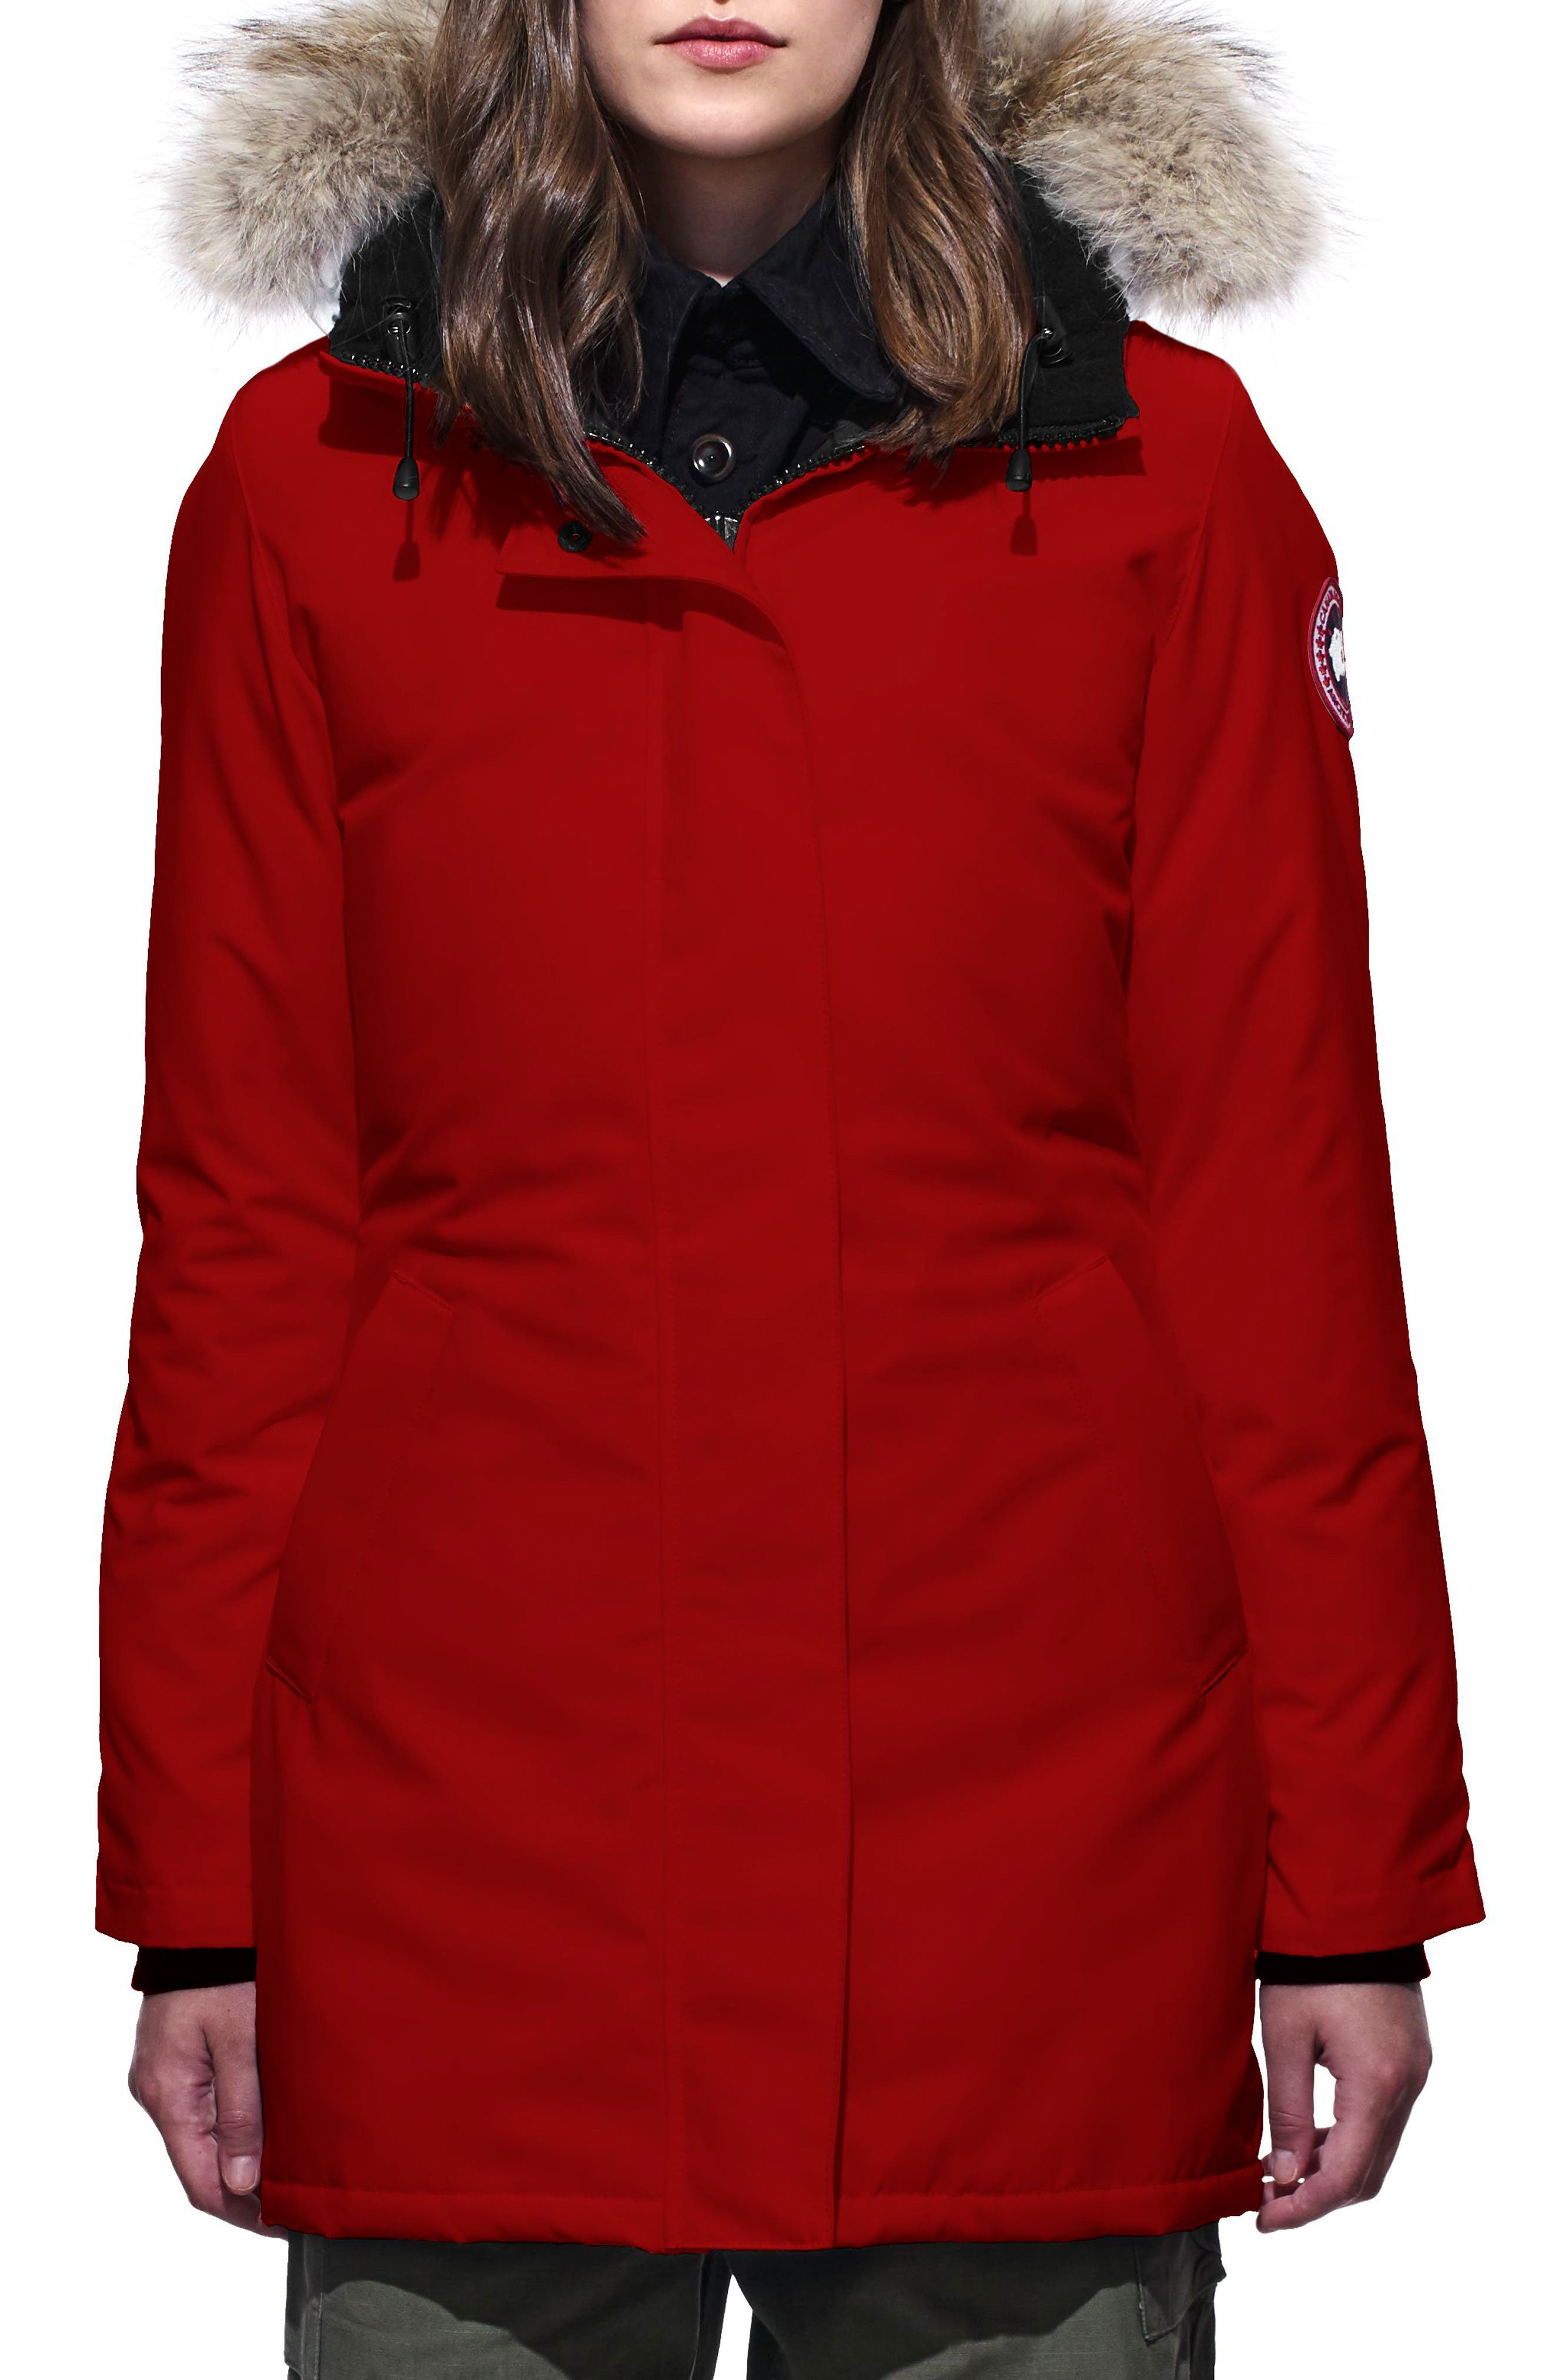 Canada Goose Victoria Down Parka With Genuine Coyote Fur Trim, (10-12) - Red